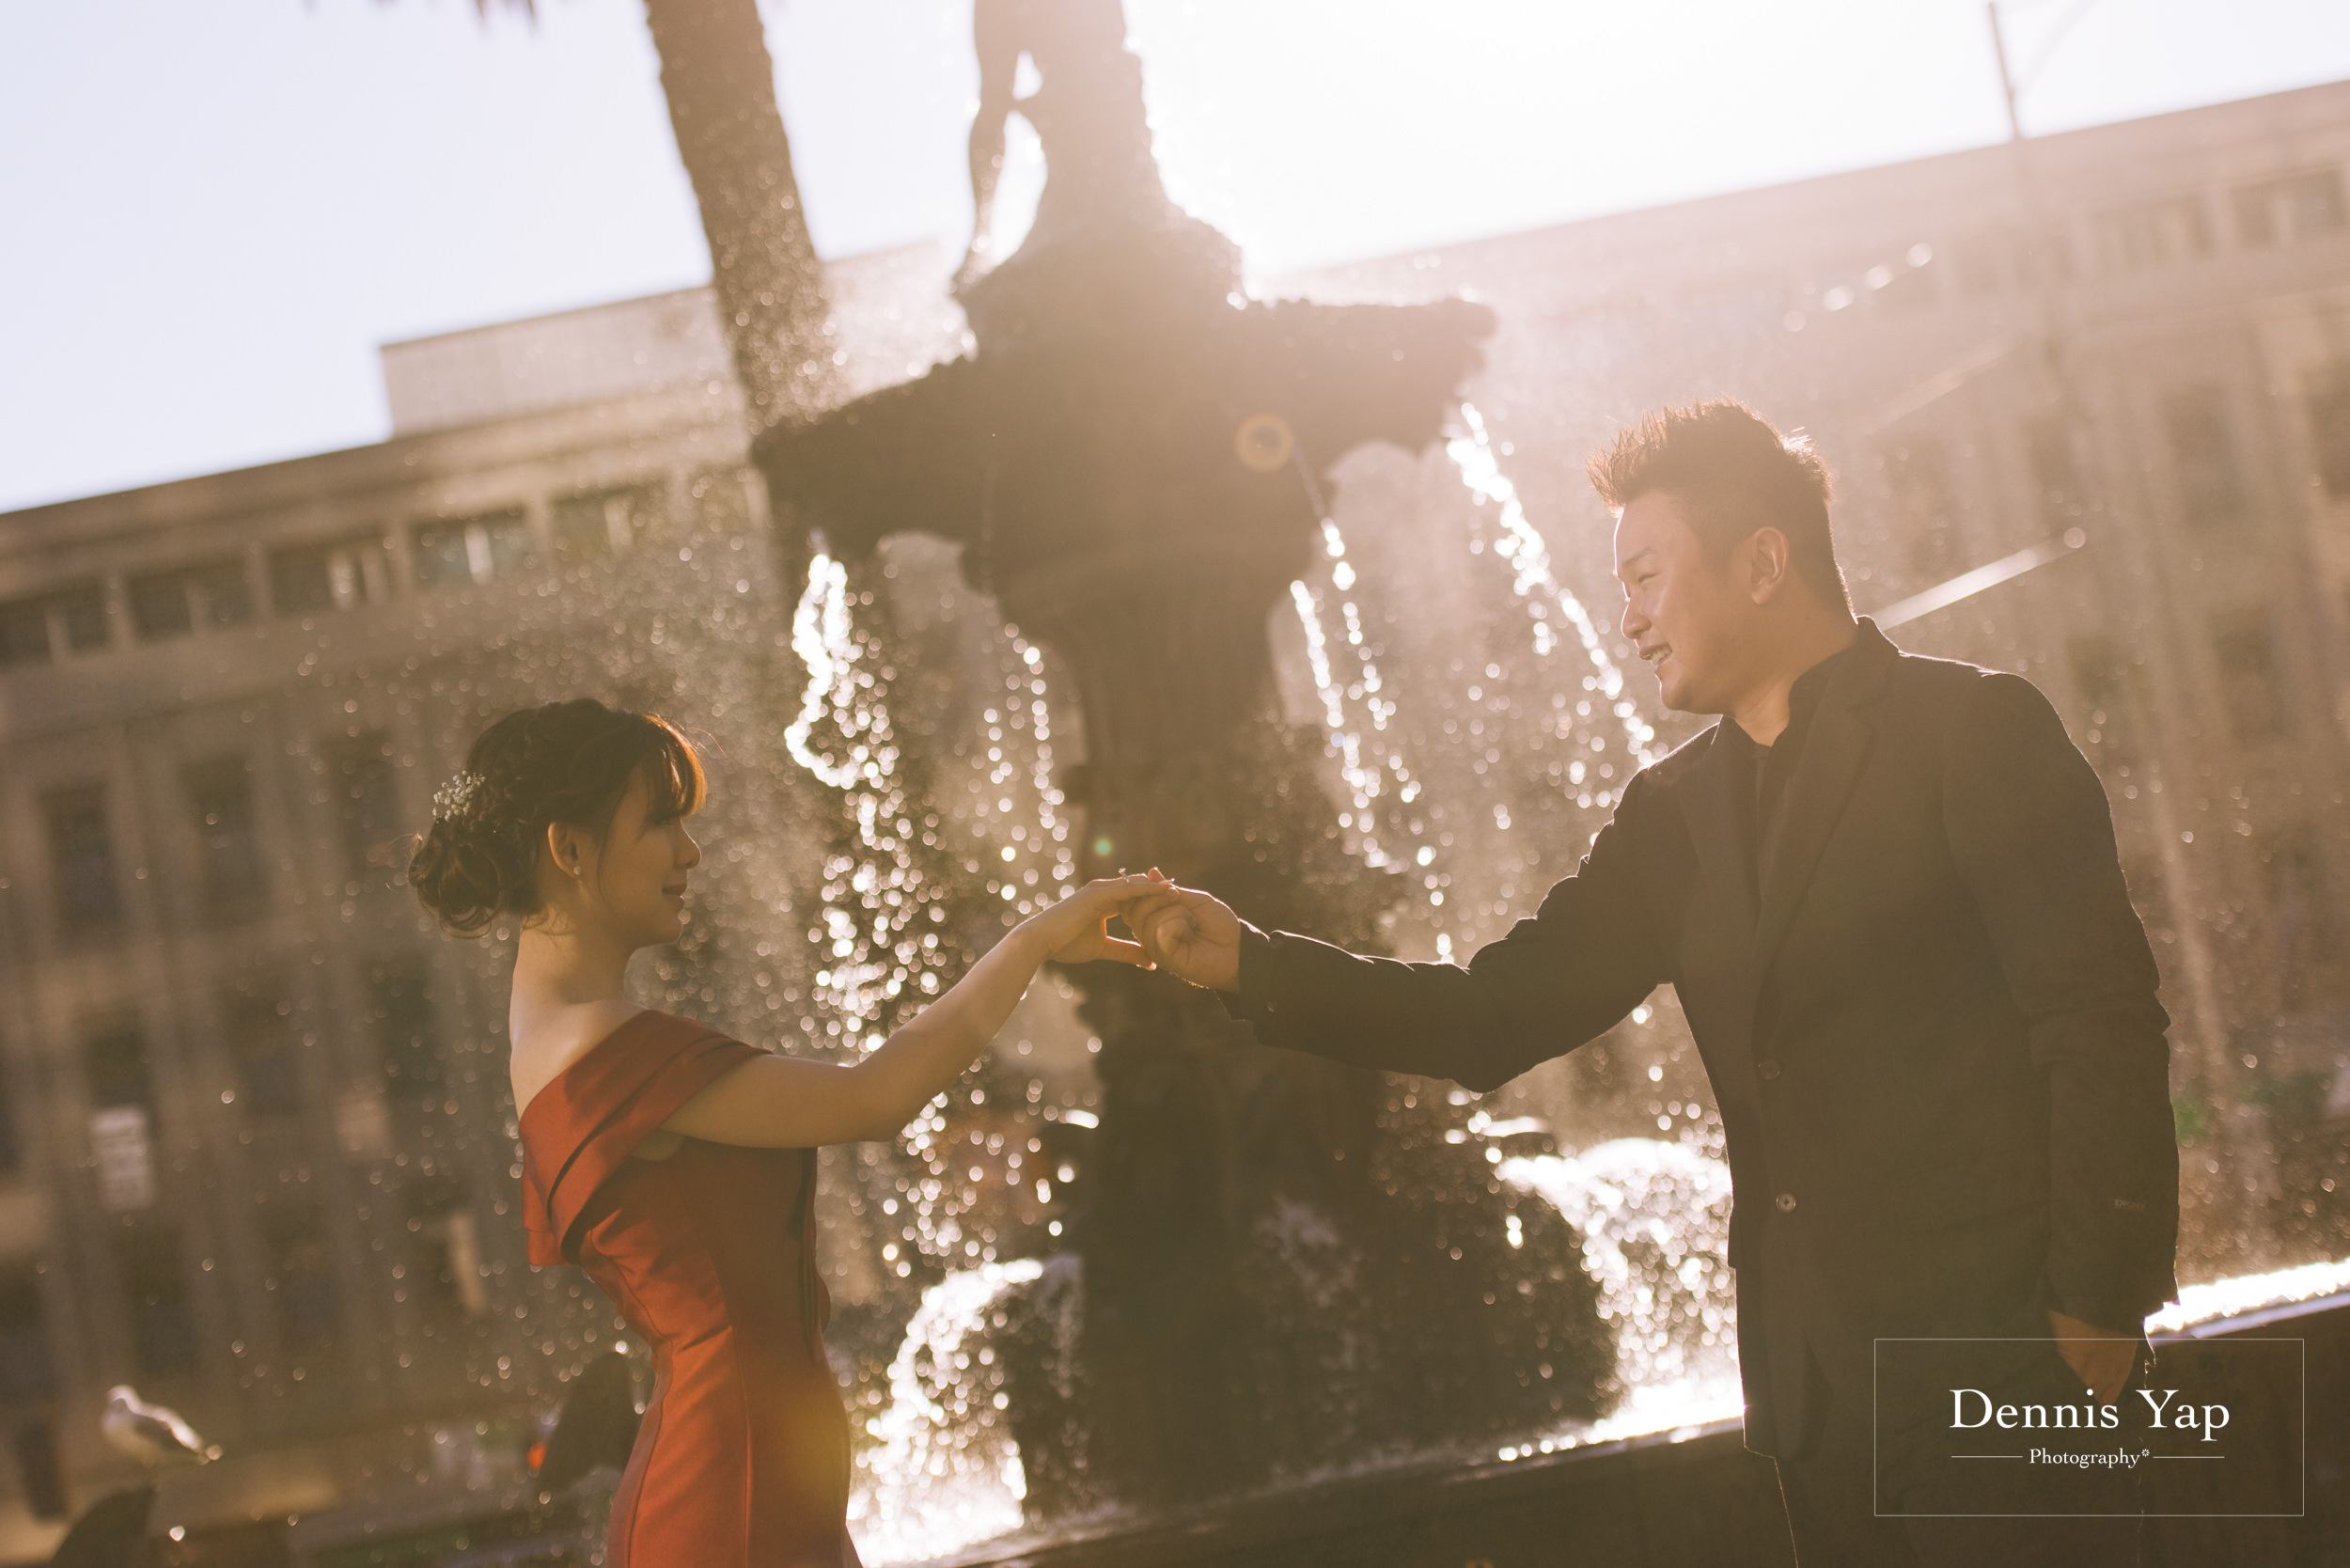 johnson joanne prewedding melbourne dennis yap photography fine art portrait paris dennis yap photography-4.jpg